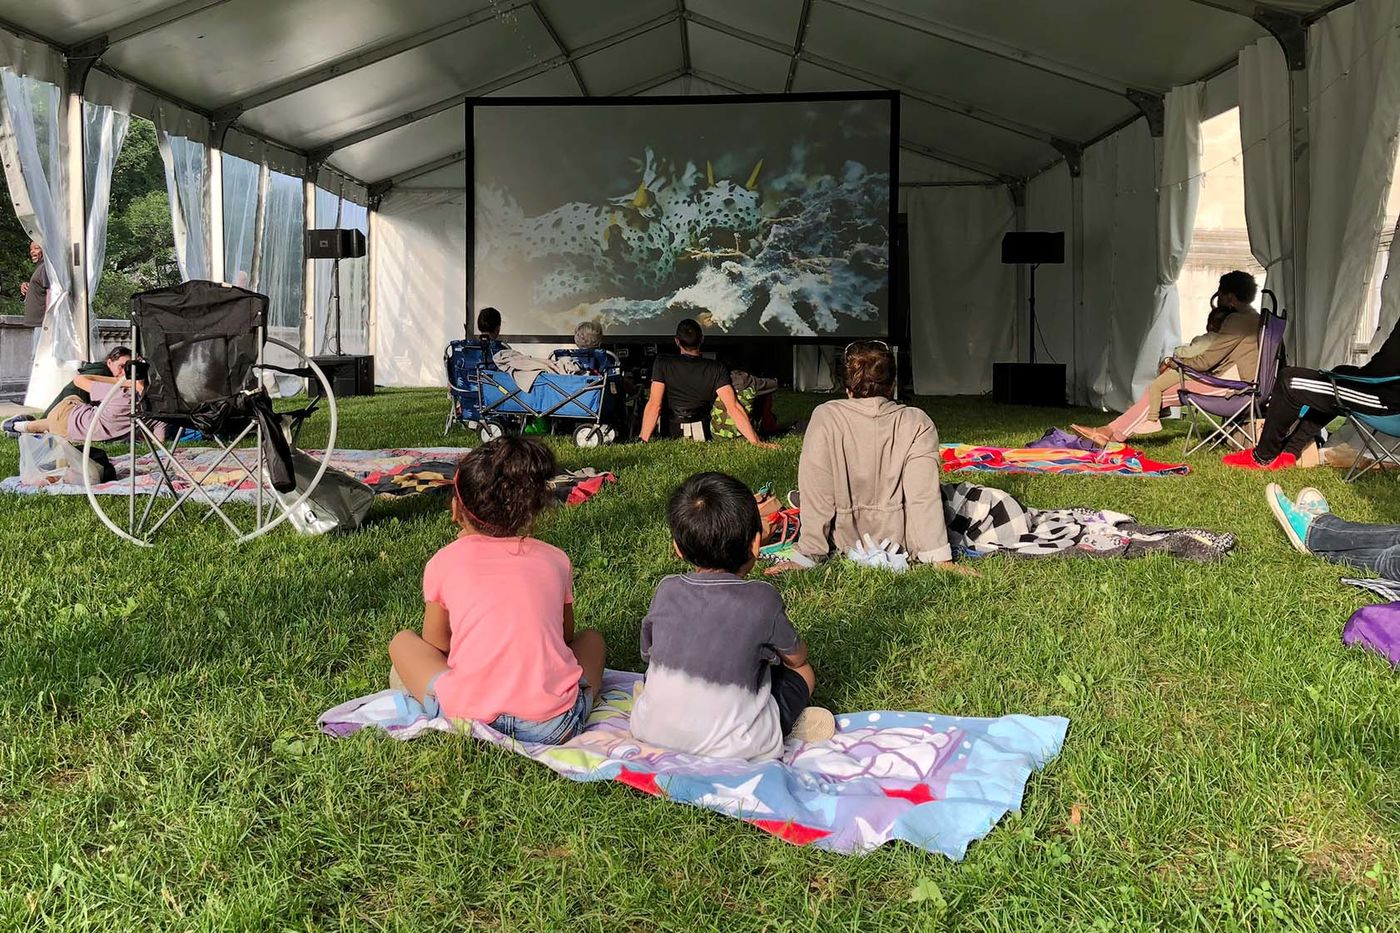 View from behind two children sitting on a beach towel on the grass, watching an underwater scene on a large movie screen in the background. Several other people are seated on blankets or camping chairs.